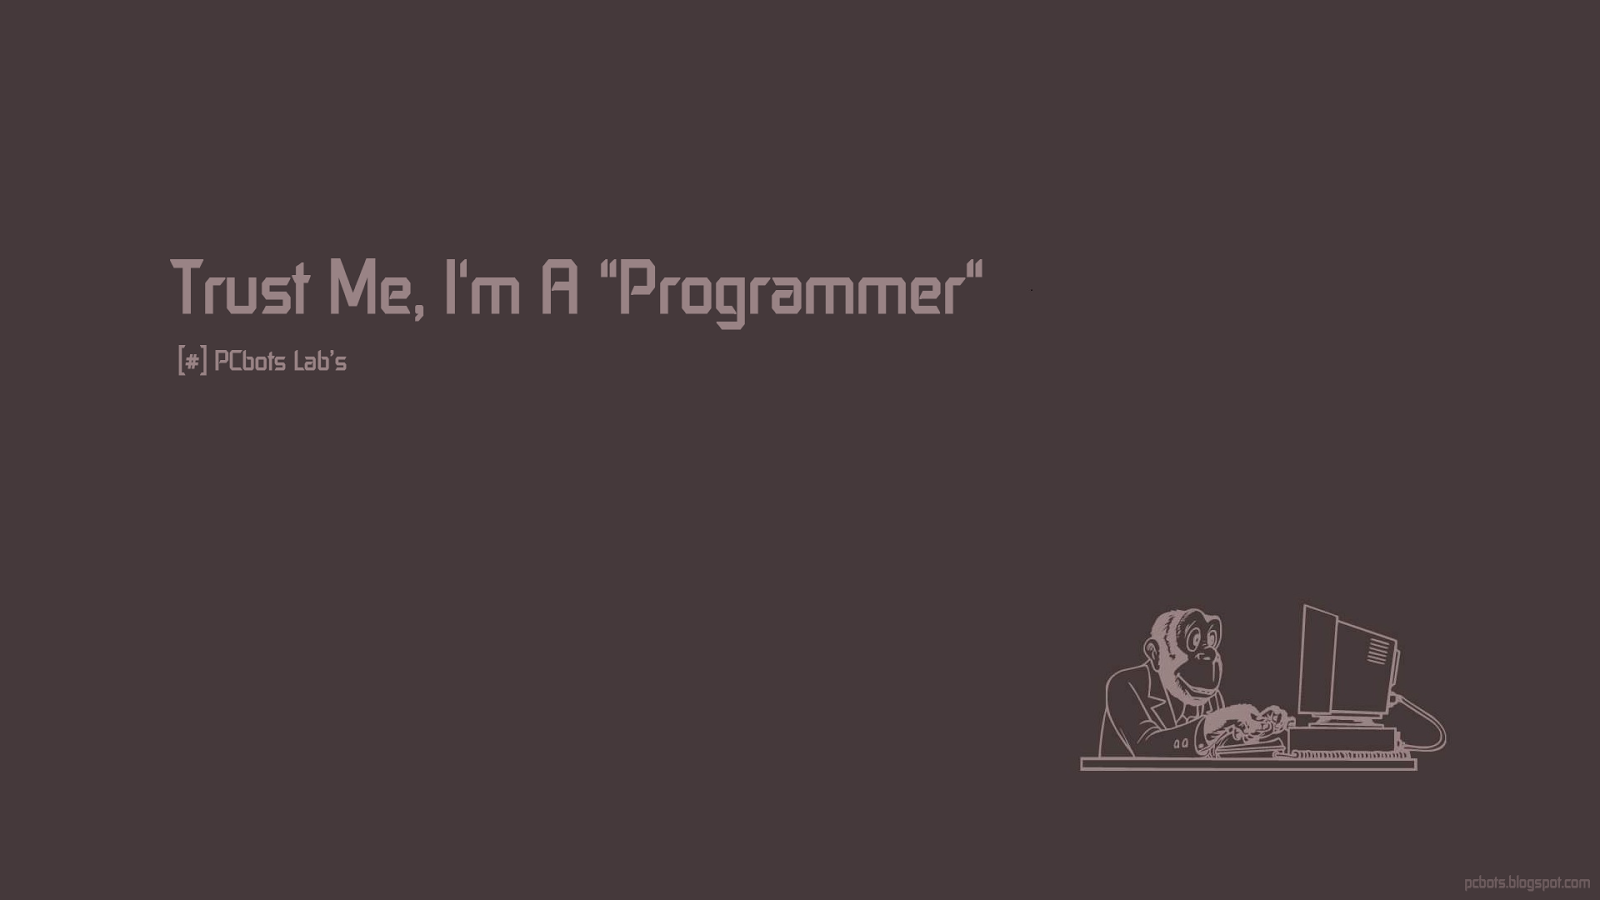 Programmers And Coders Wallpapers HD By PCbots   Part   II PCbots 1600x900